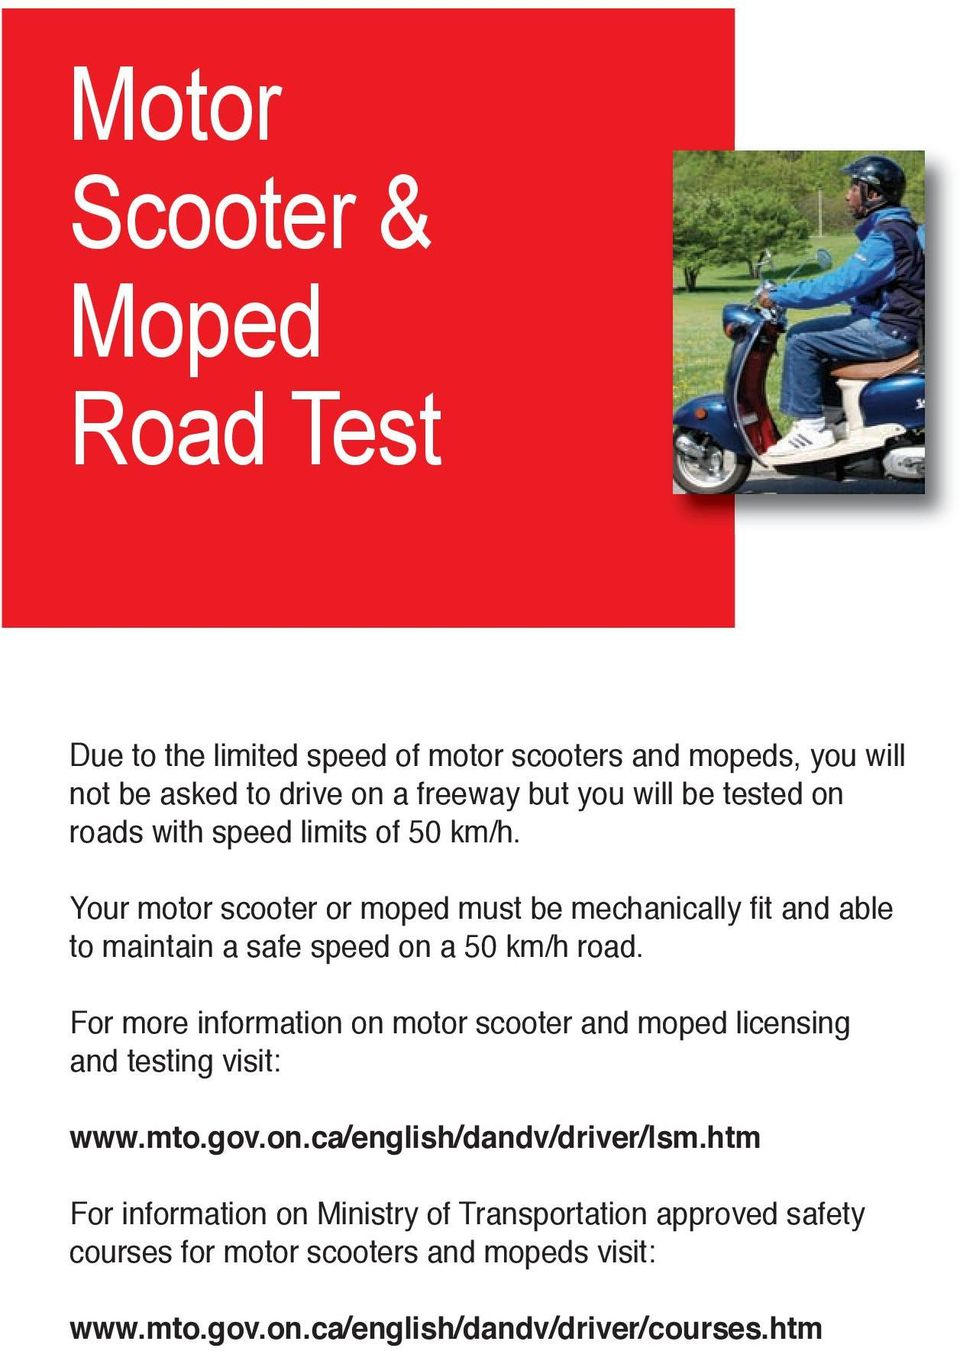 Your motor scooter or moped must be mechanically fit and able to maintain a safe speed on a 50 km/h road.